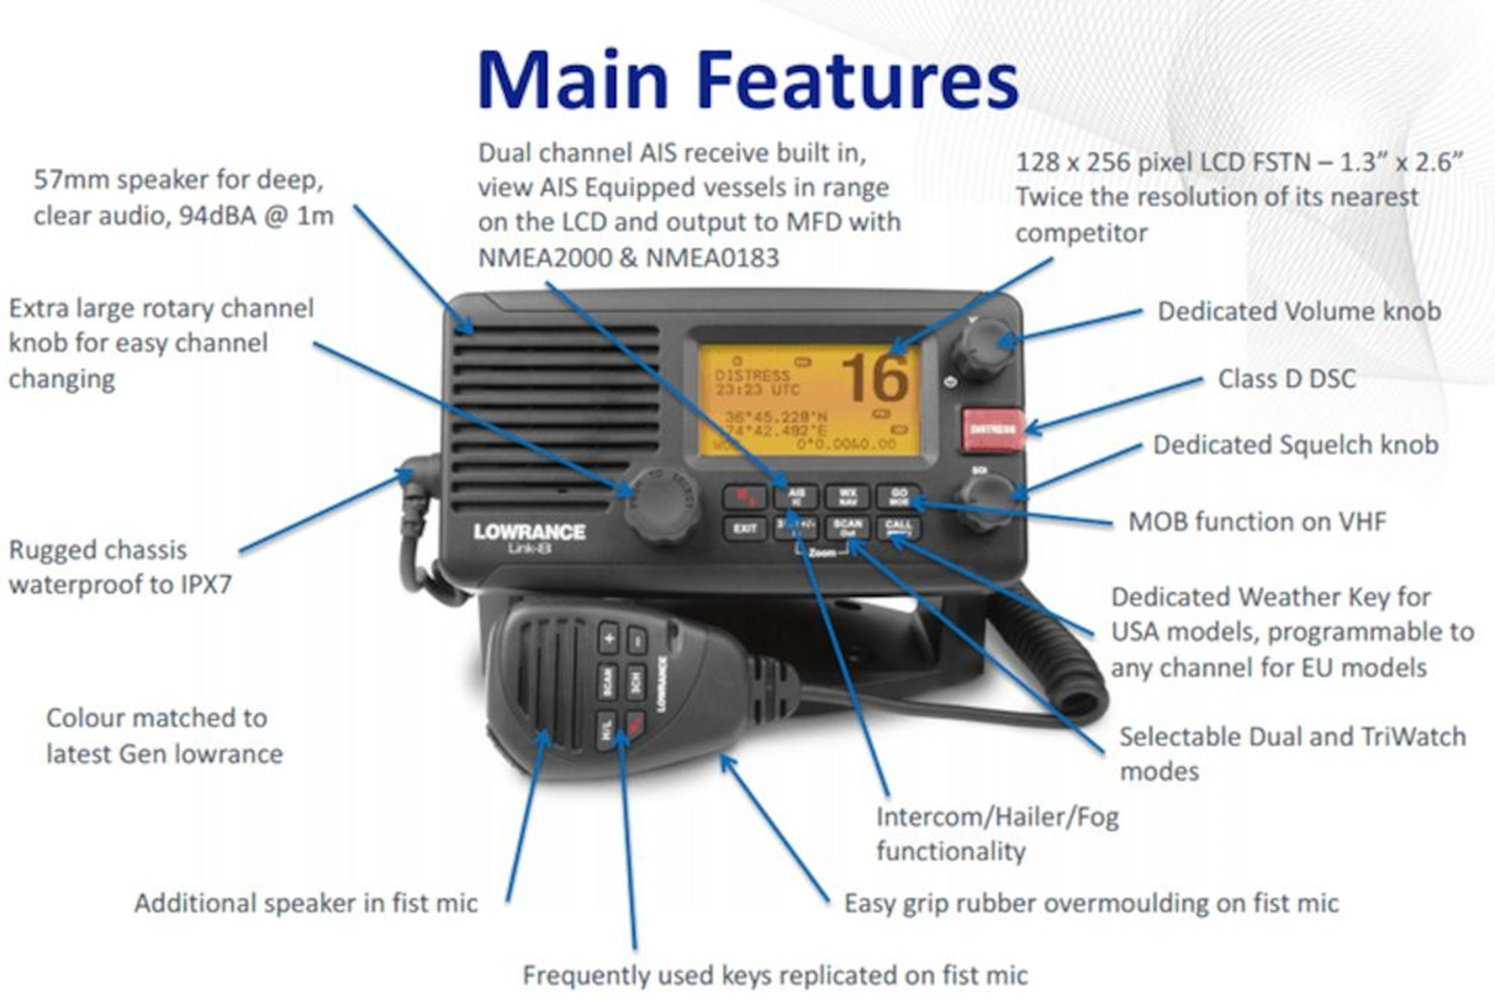 Lowrance Link 8 Vhf Radio W Ais Nmea 2000 Connectivity Dsc 551 Wiring Diagram Sports Outdoors